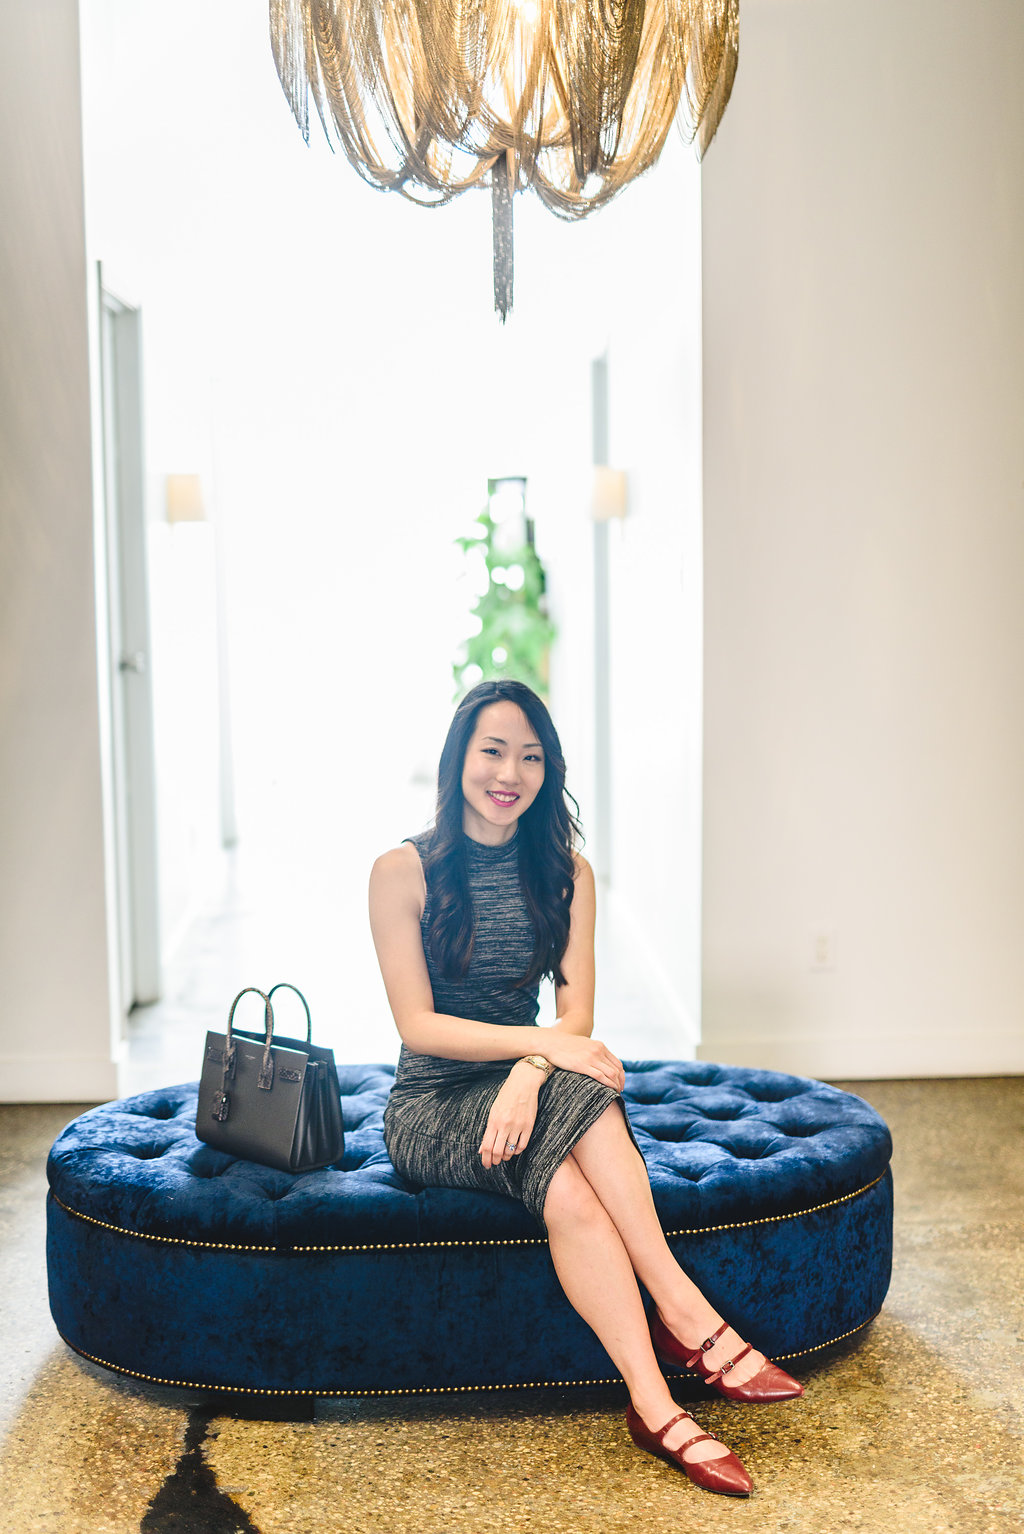 Bridesmaid Spa Day ideas with Rebecca Chan in Toronto at Cures Studio, Photo by Jessilynn Wong Photography